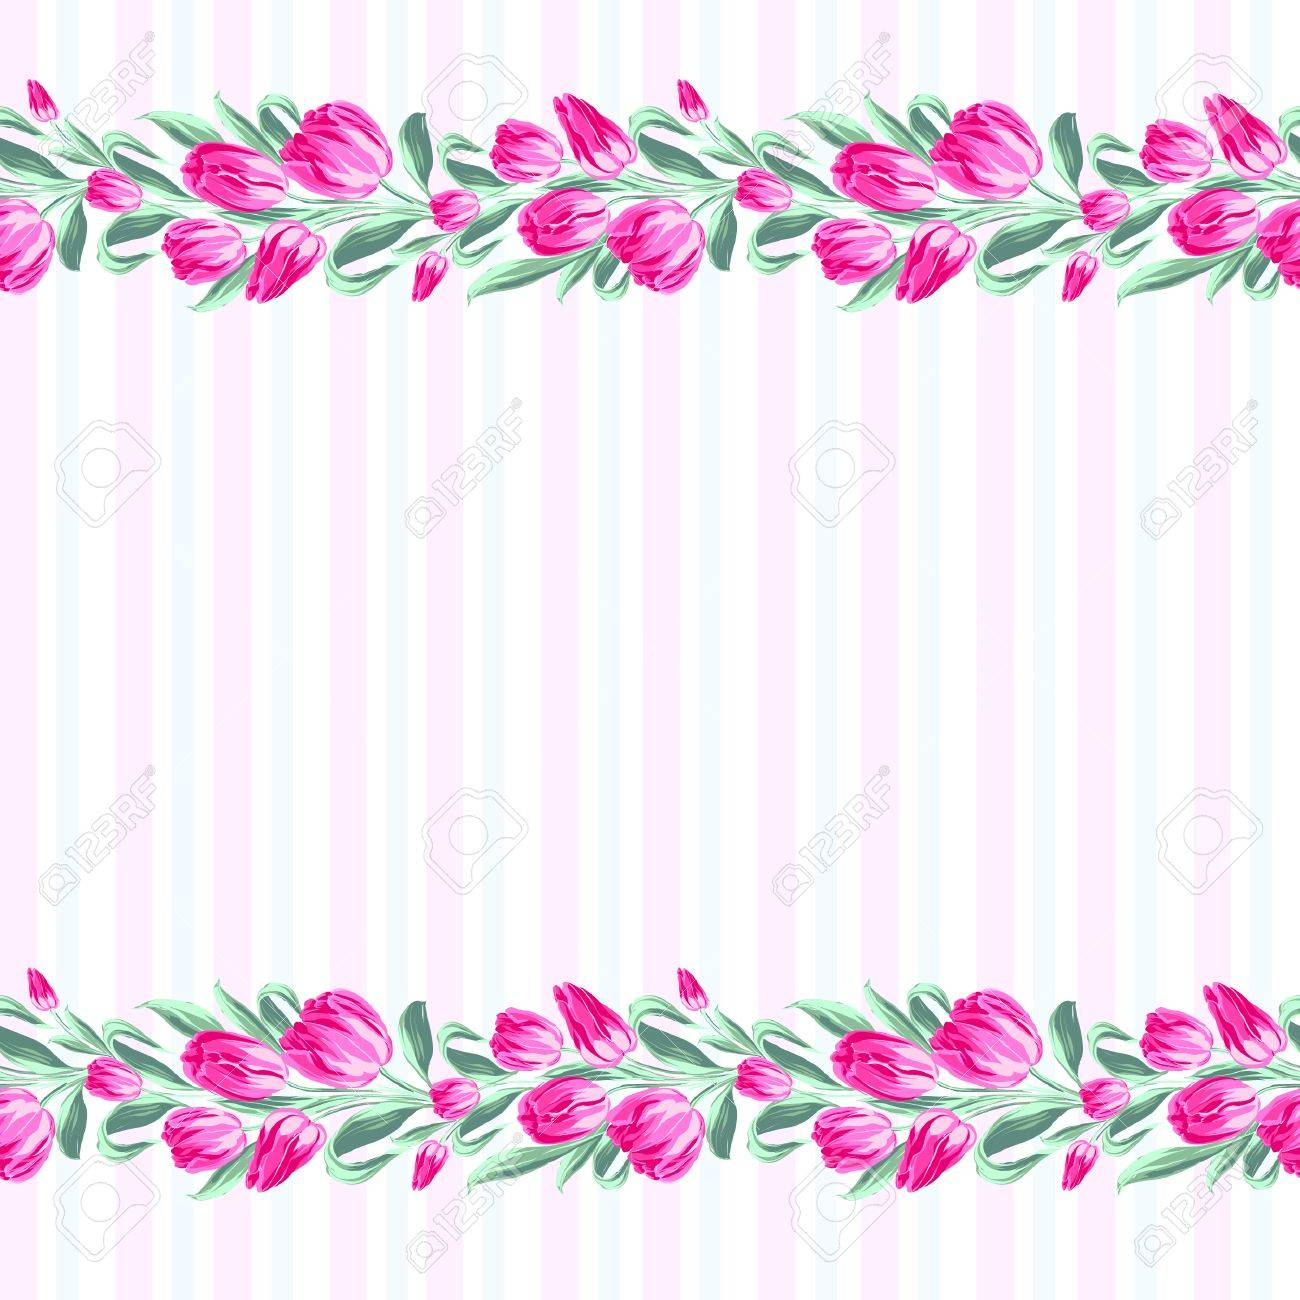 Invitation Cards With Flowers And Lines Vector Illustration